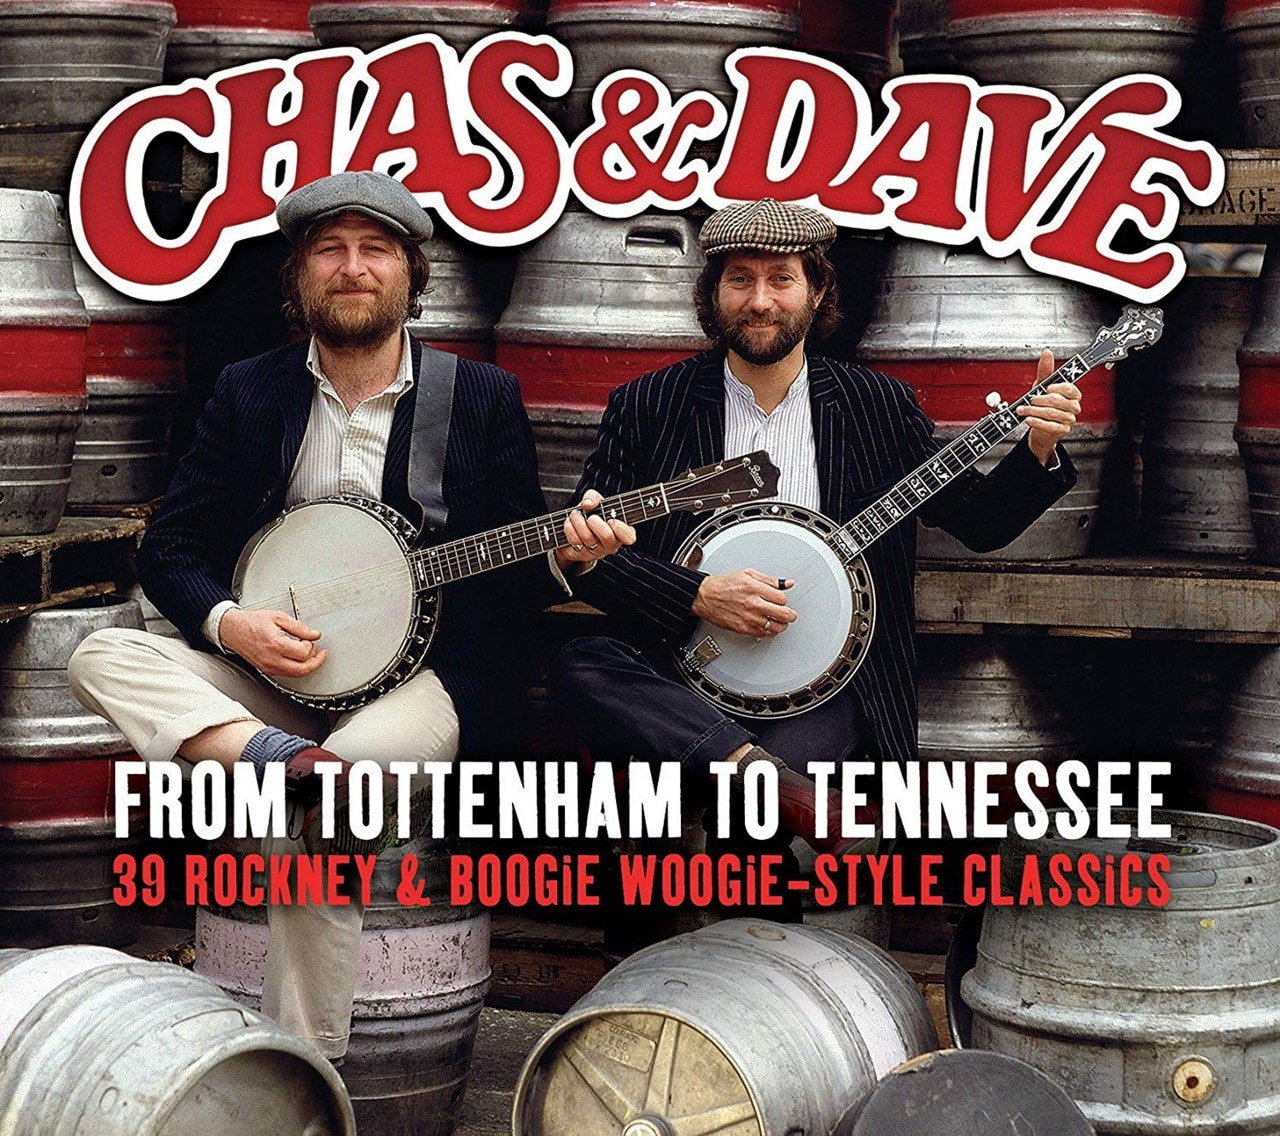 From Tottenham to Tennessee - 1